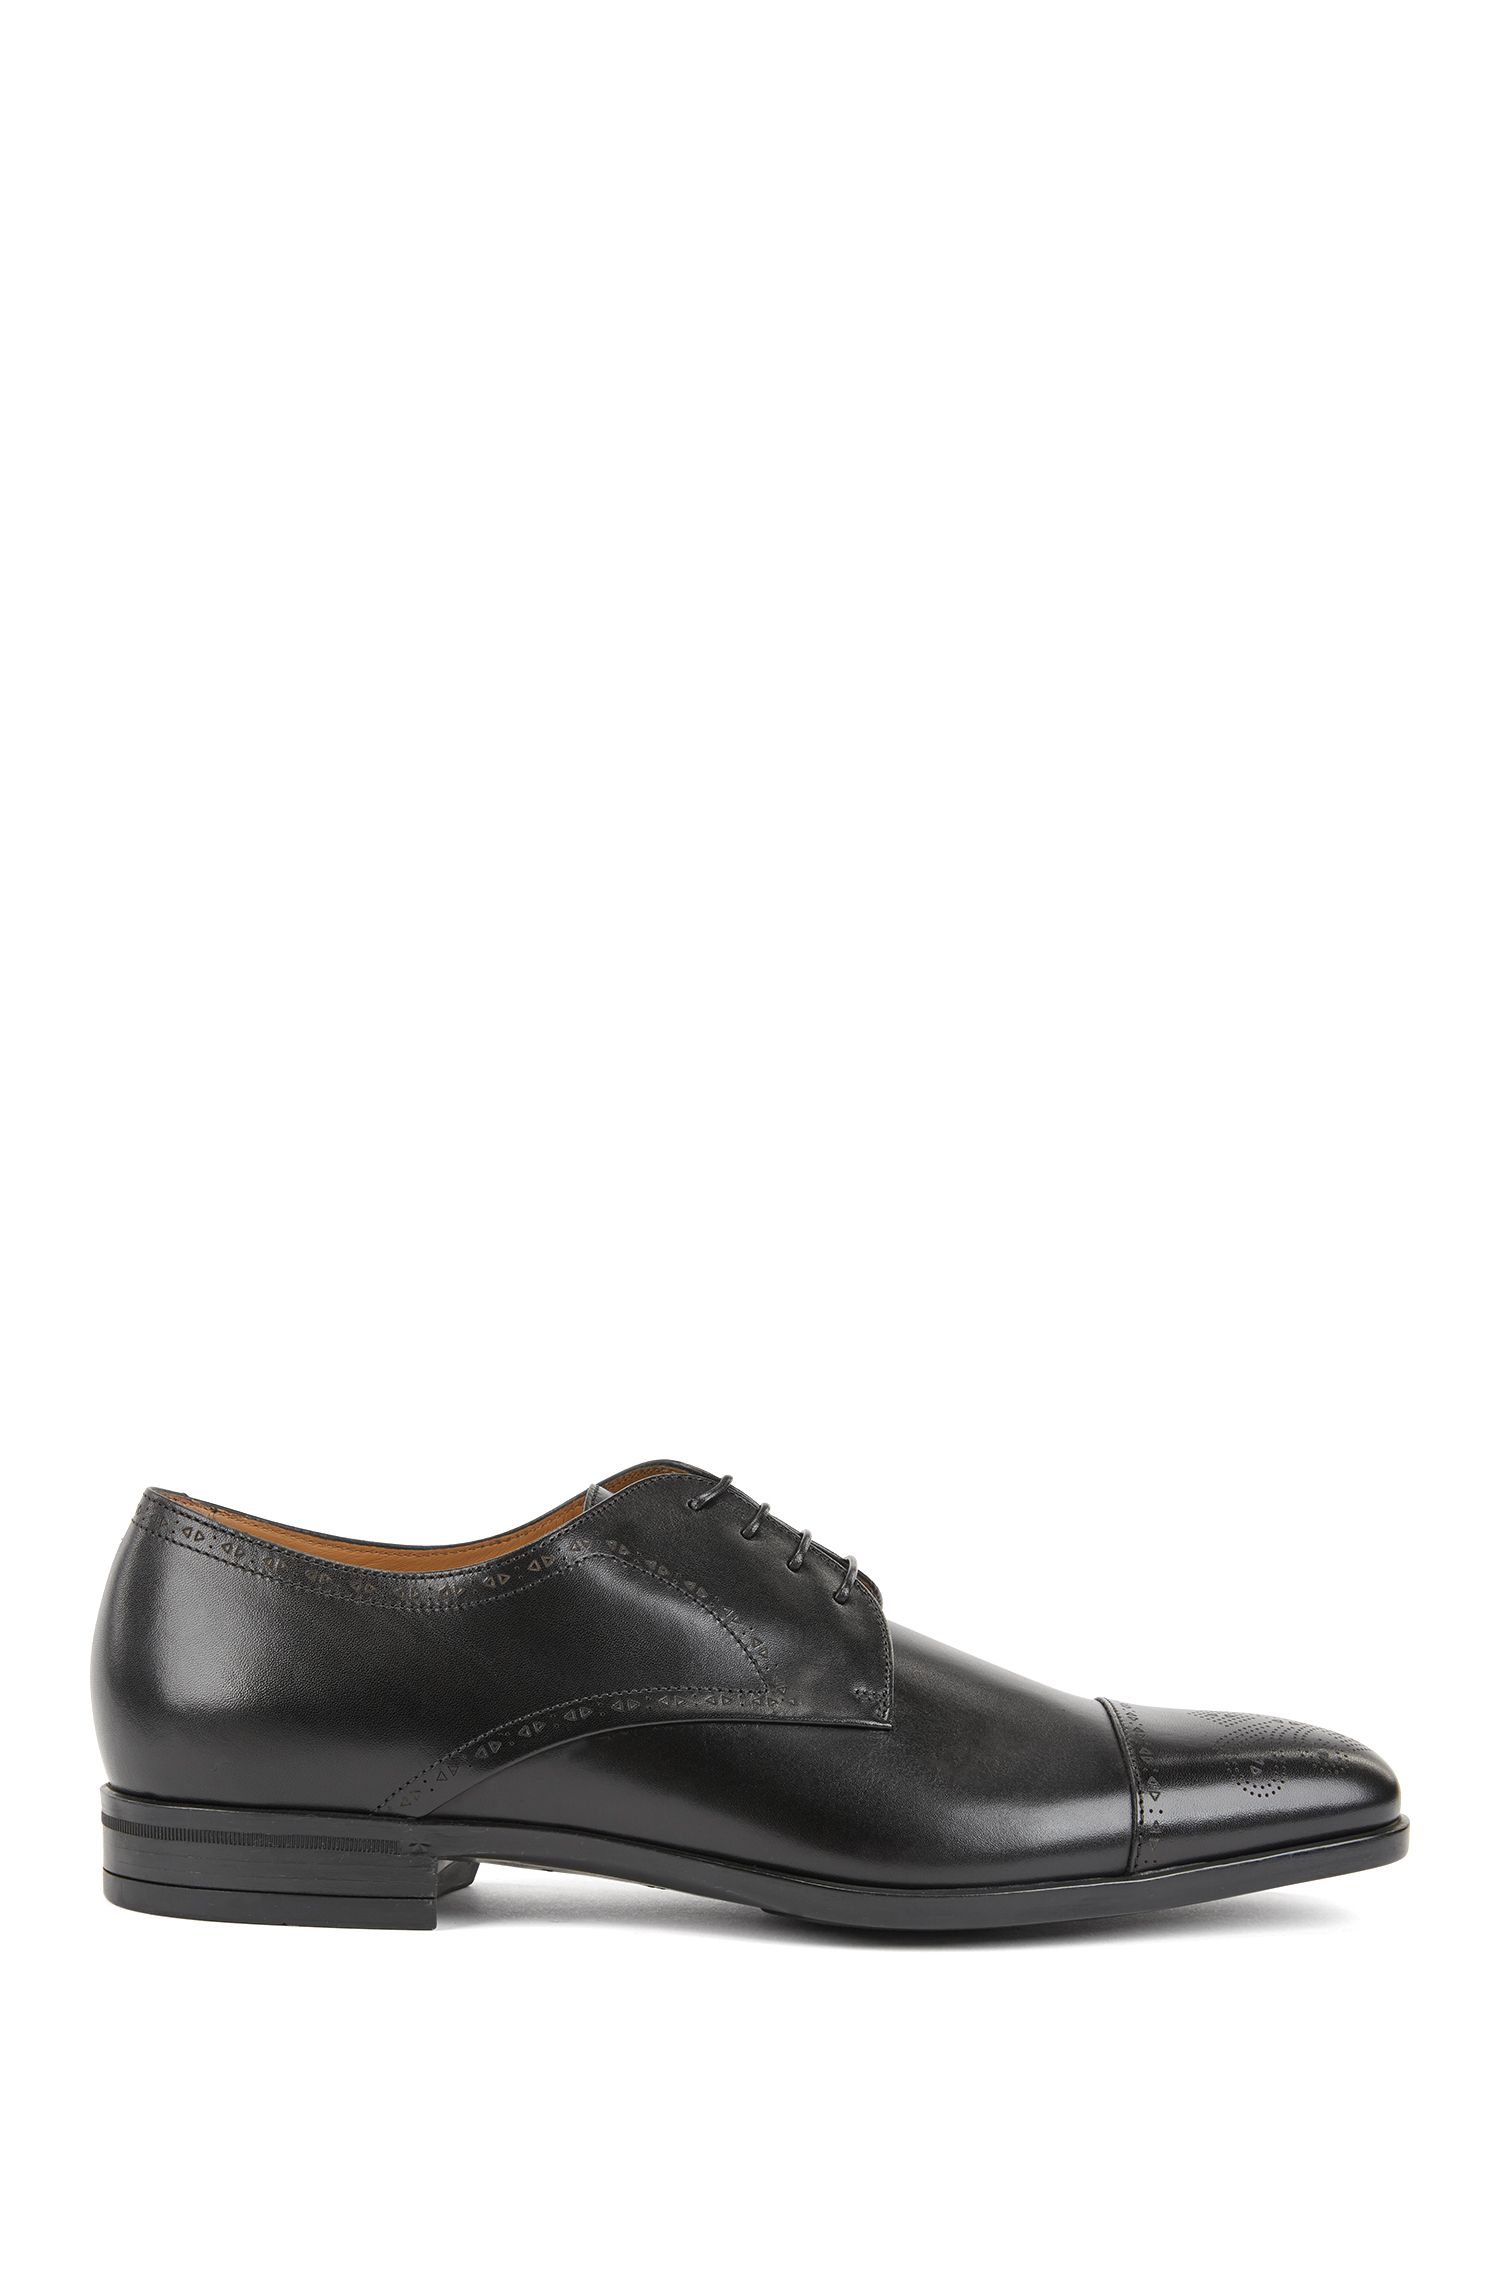 Laser-cut Derby shoes in burnished leather with brogue detailing